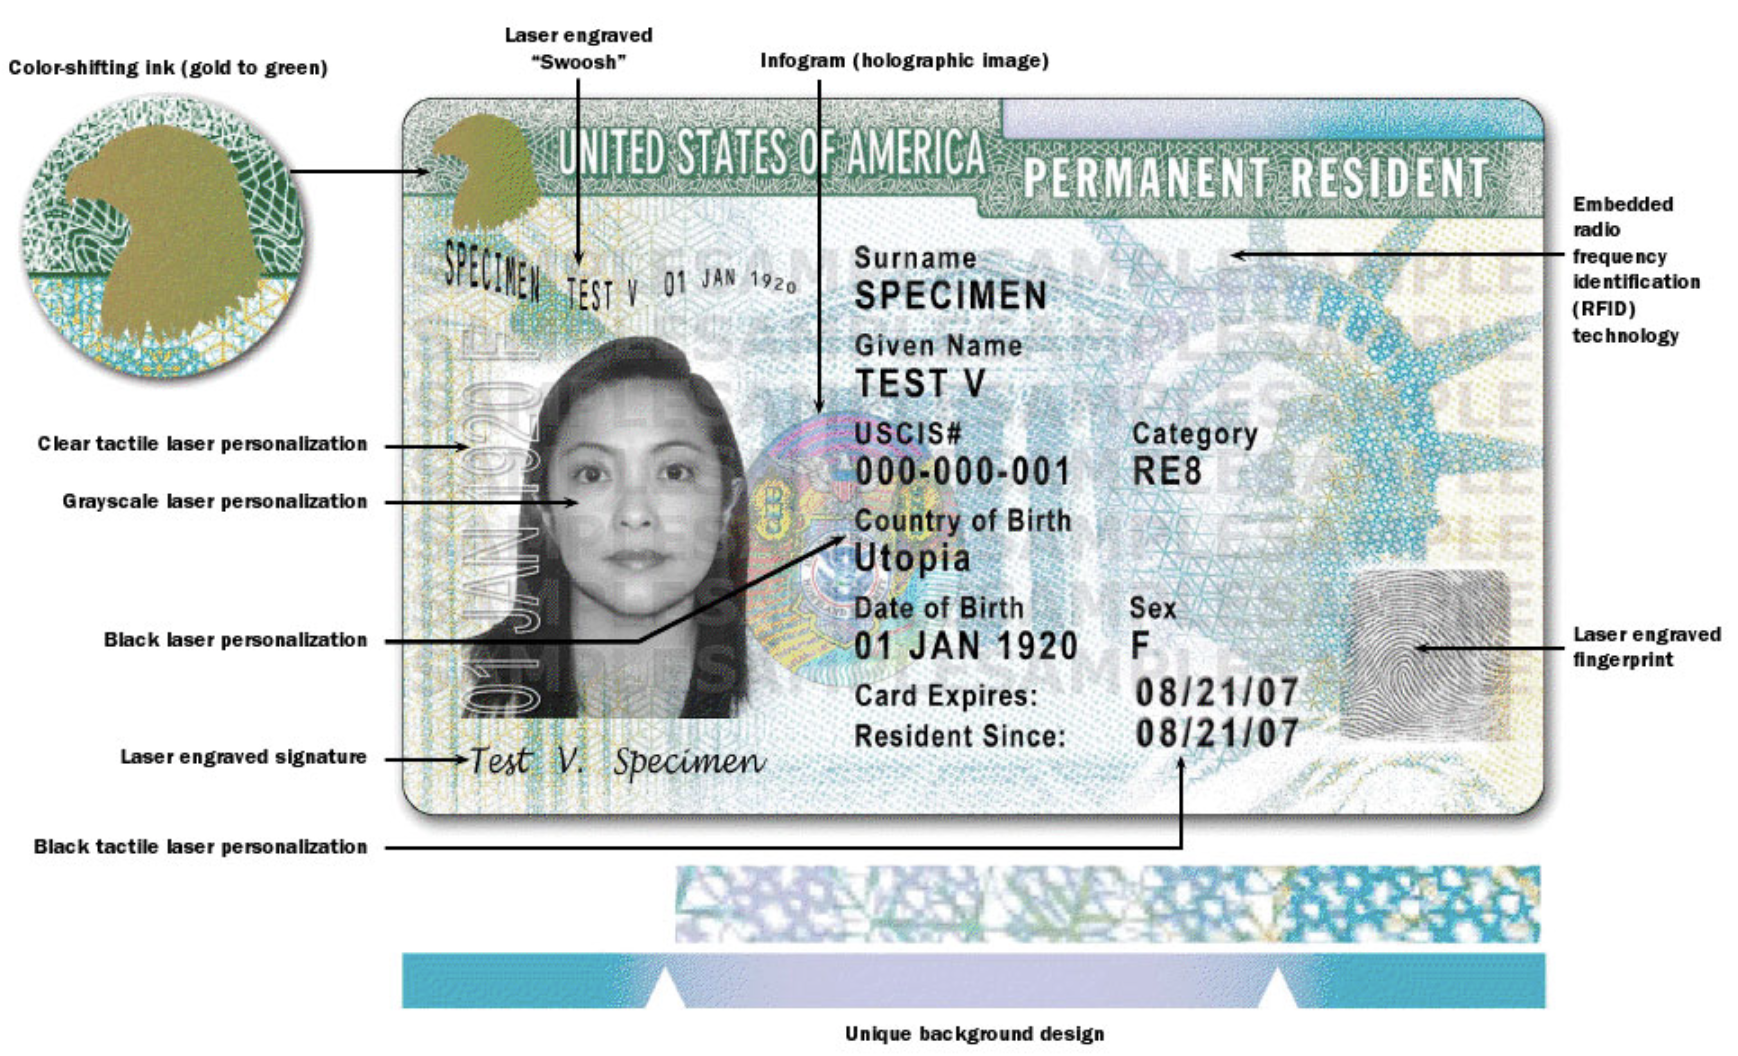 what document show permanent resident status